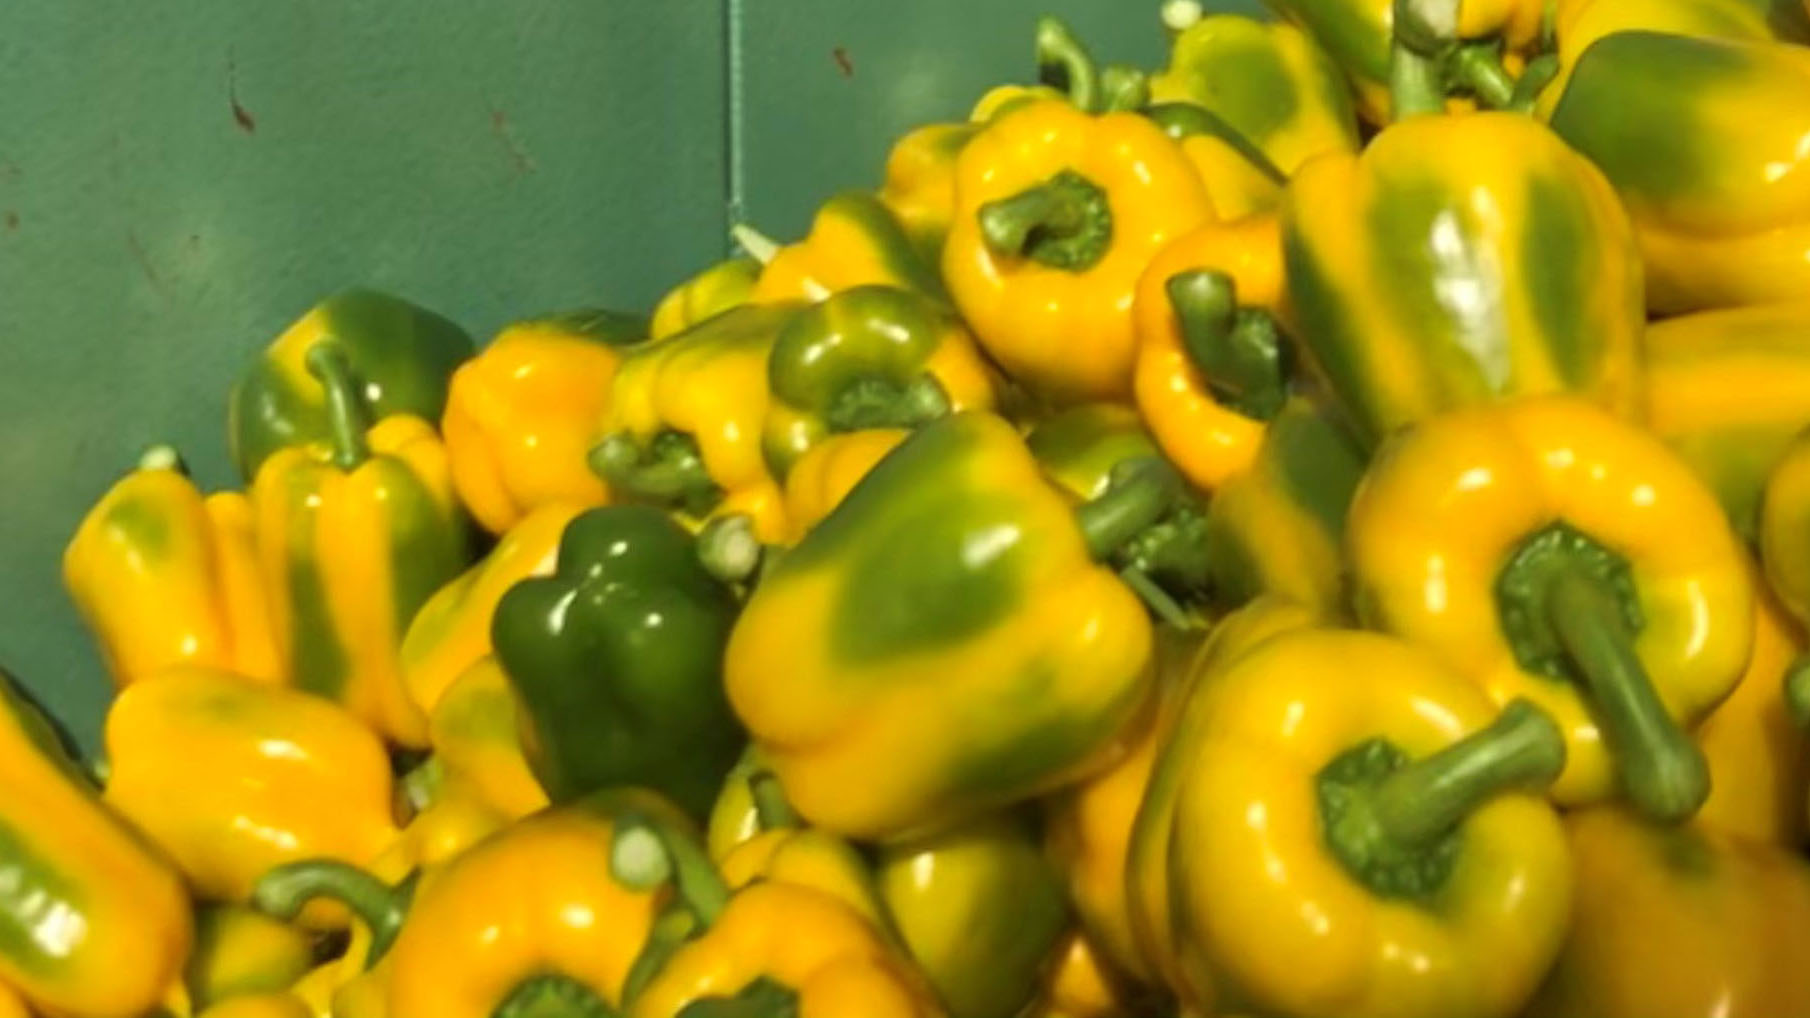 green yellow sweet peppers